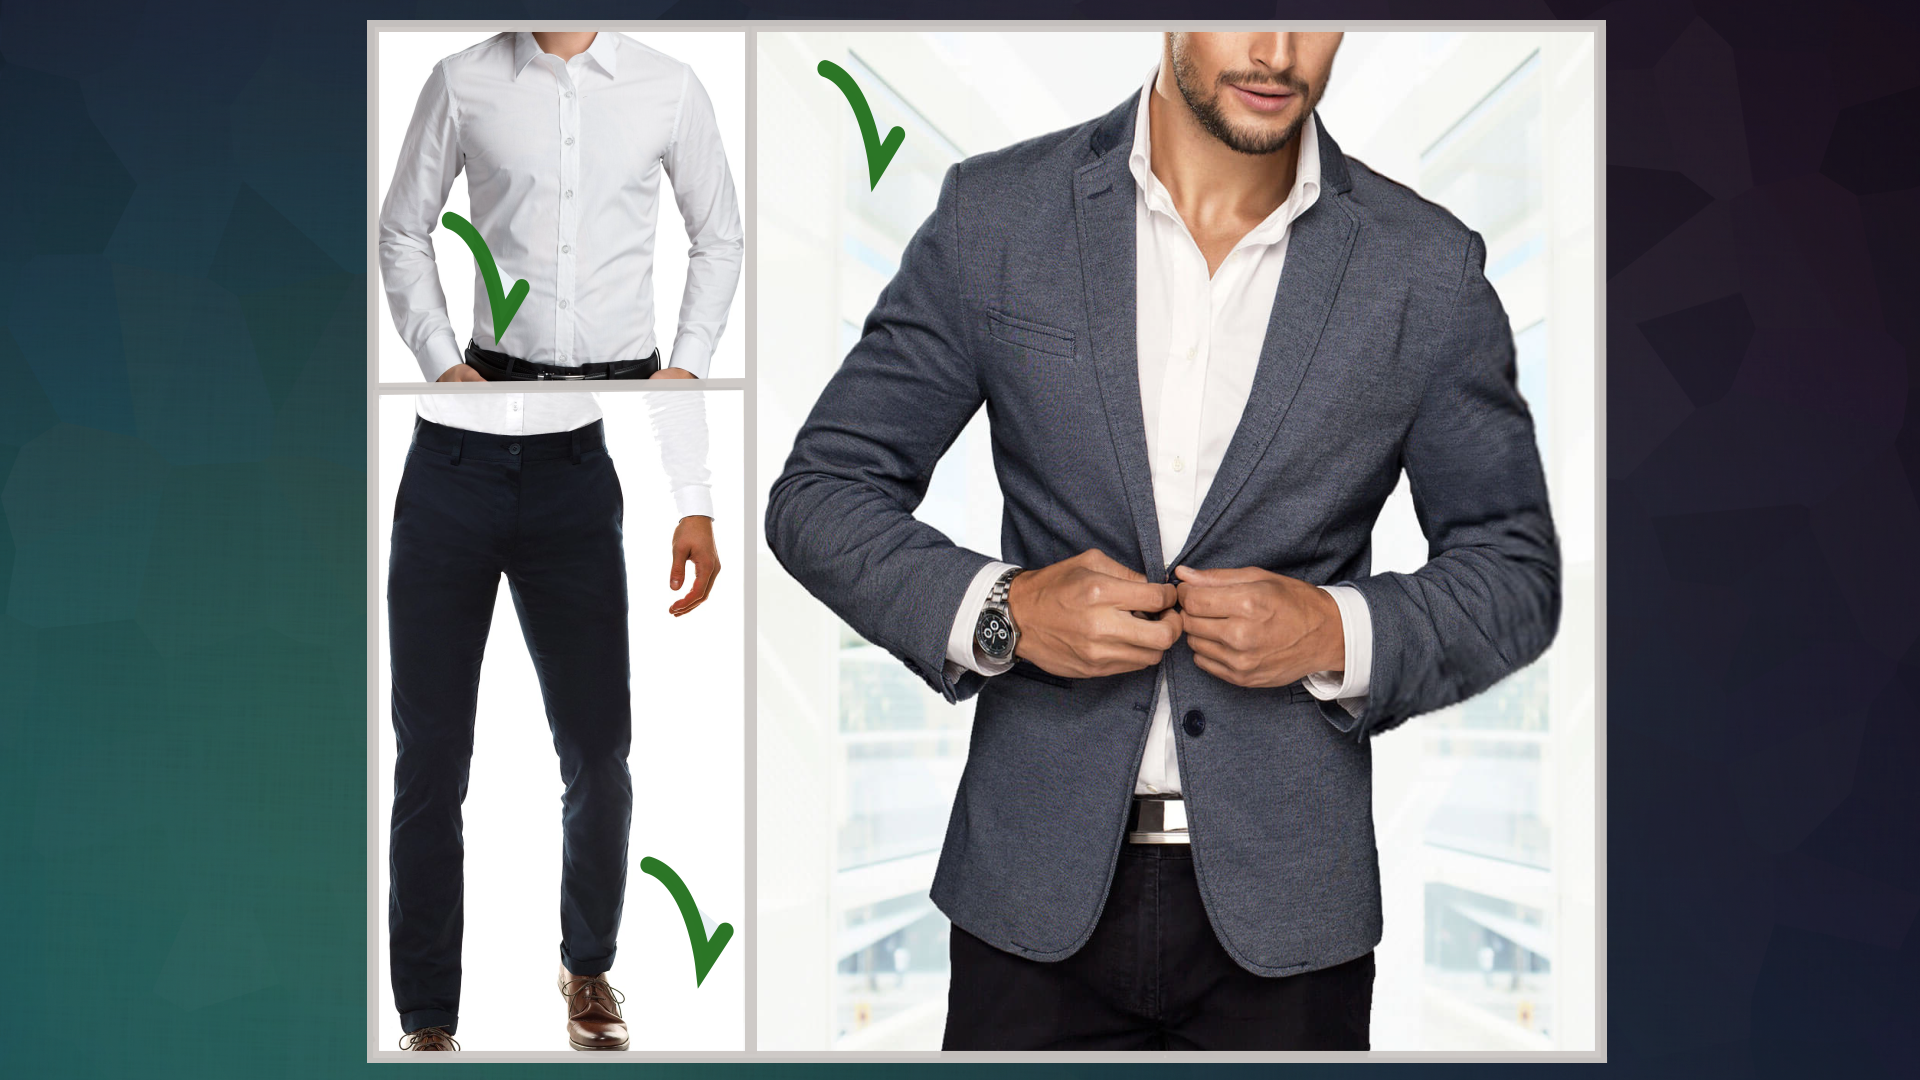 Does dressing well at work make a difference?